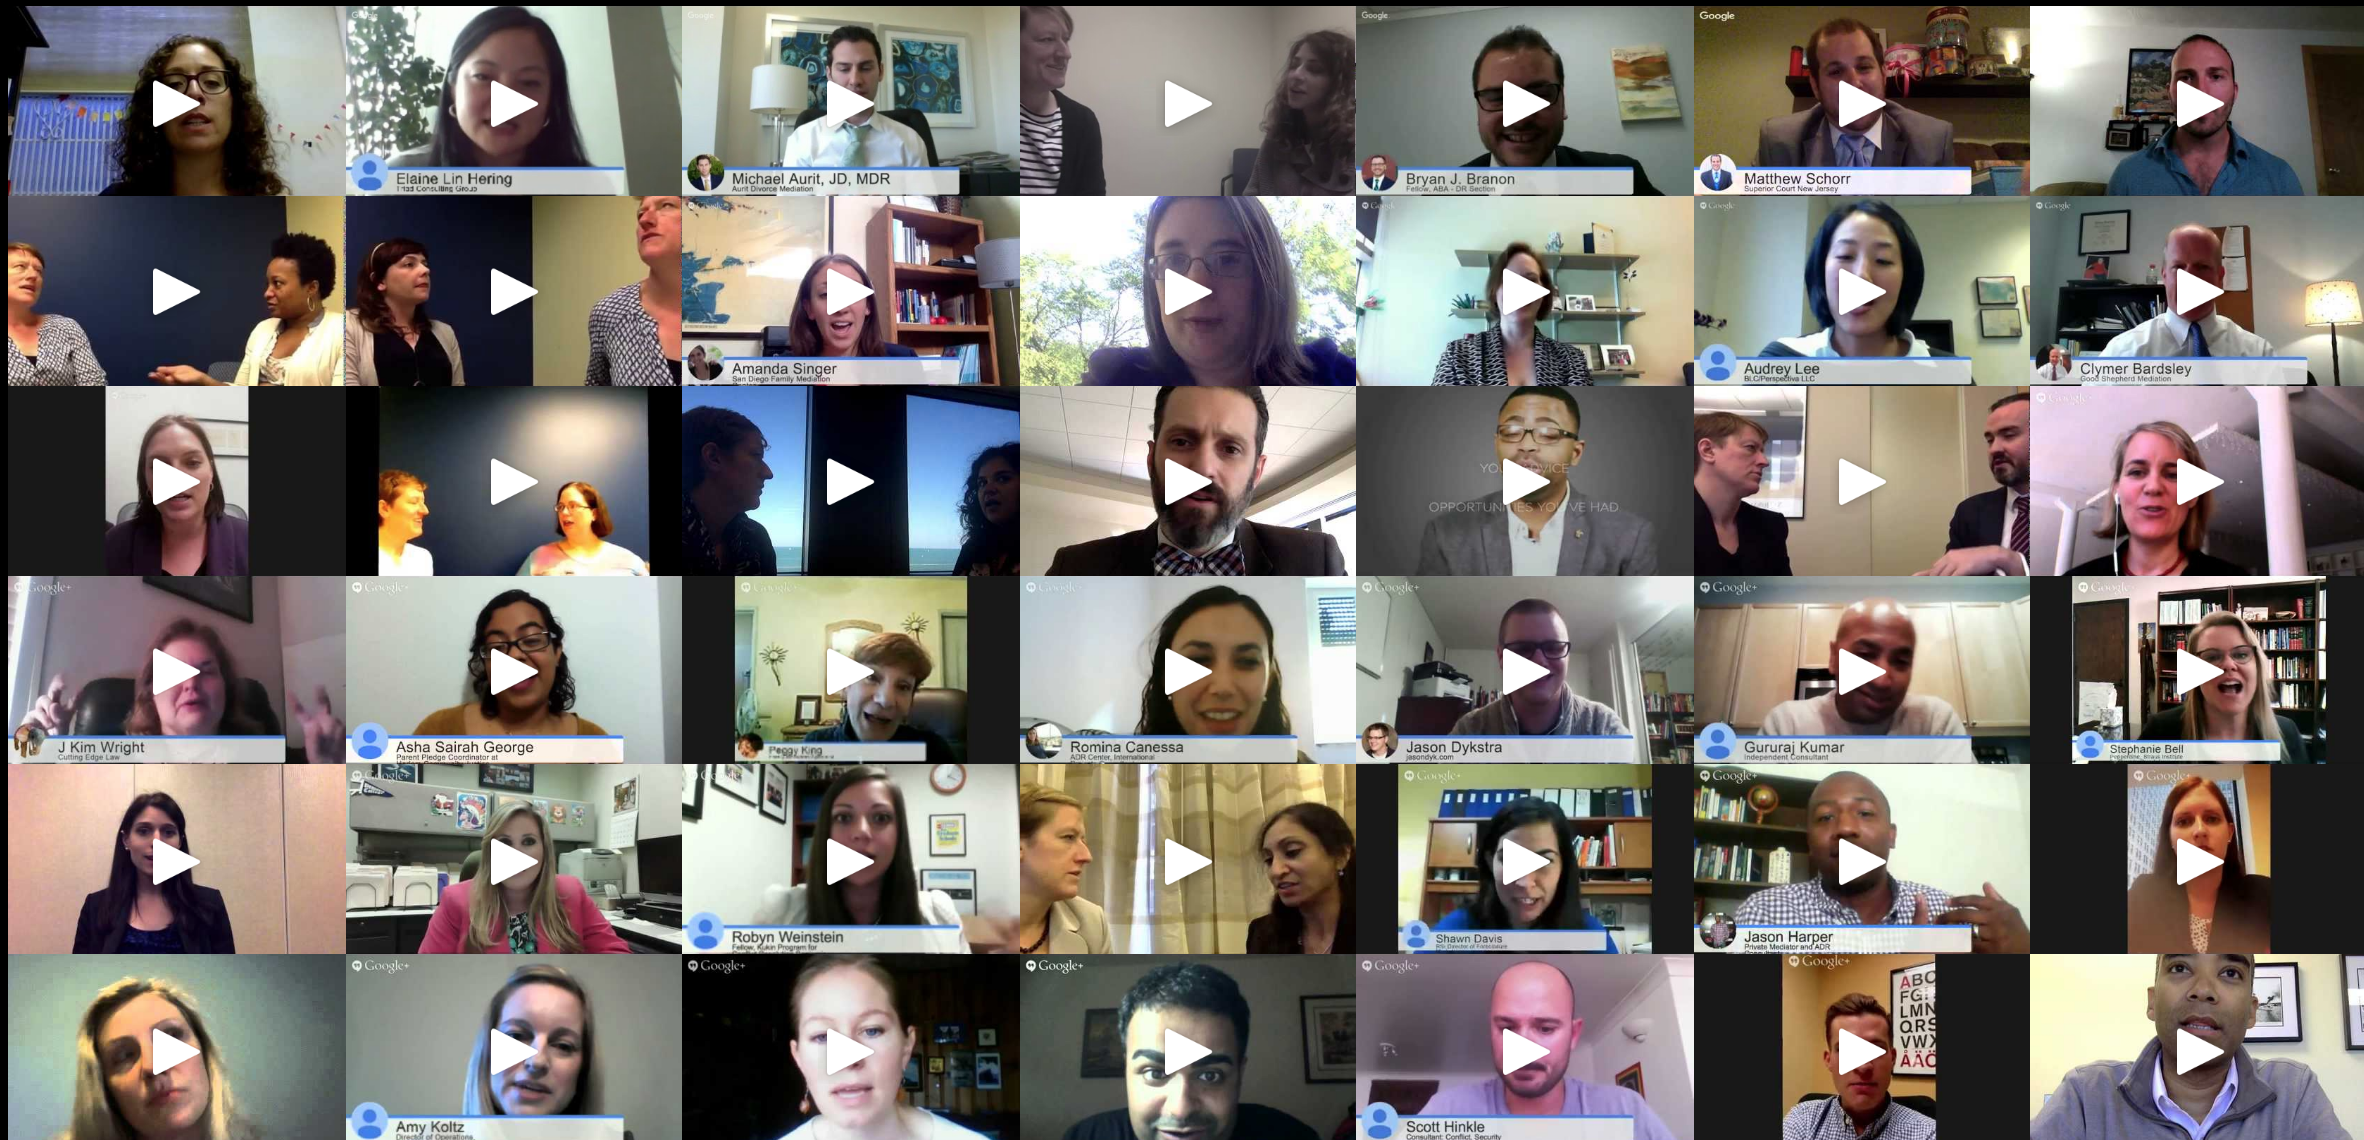 A VIDEO BLOG - celebrating individuals who started out their professional careers in the ADR field. Hear stories about paths they followed, advice they received, challenges they faced, and accomplishments they achieved.